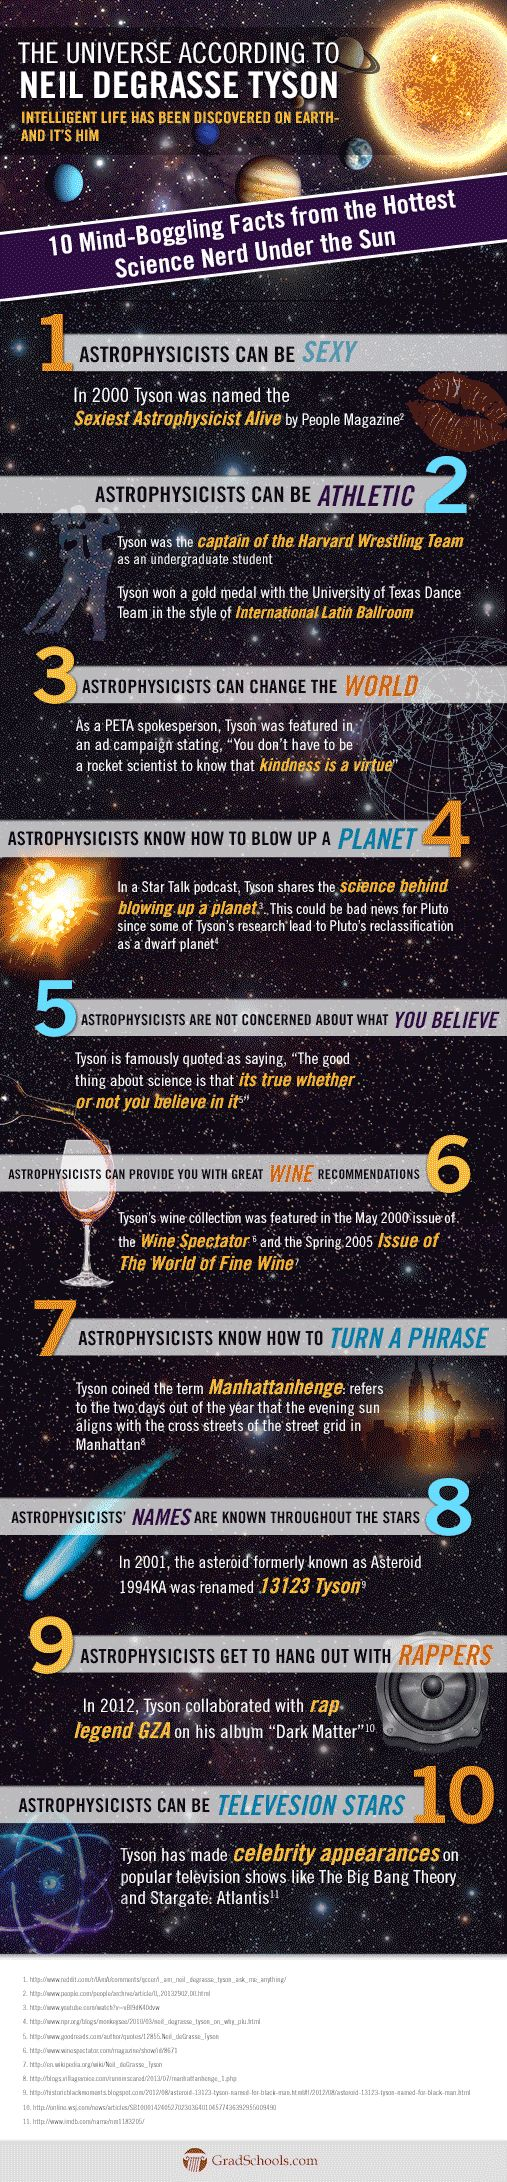 This is the best infographic about the coolest scientist on Earth. #Neil  DeGrasse Tyson